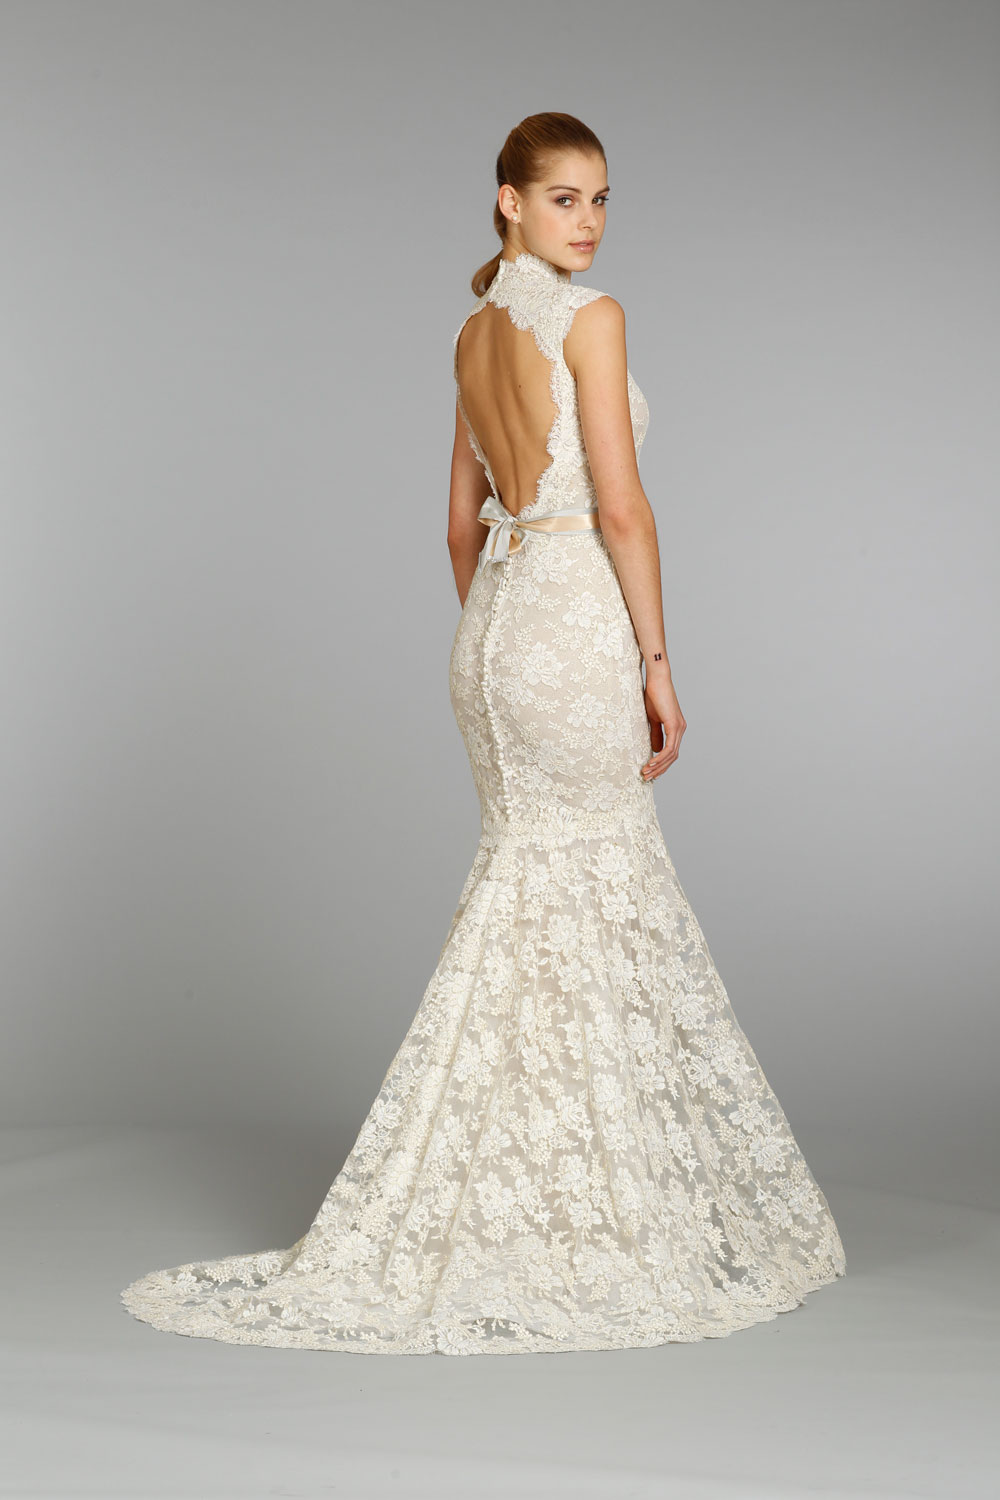 Lazaro wedding dress fall 2013 bridal 3352 for Where to buy lazaro wedding dresses